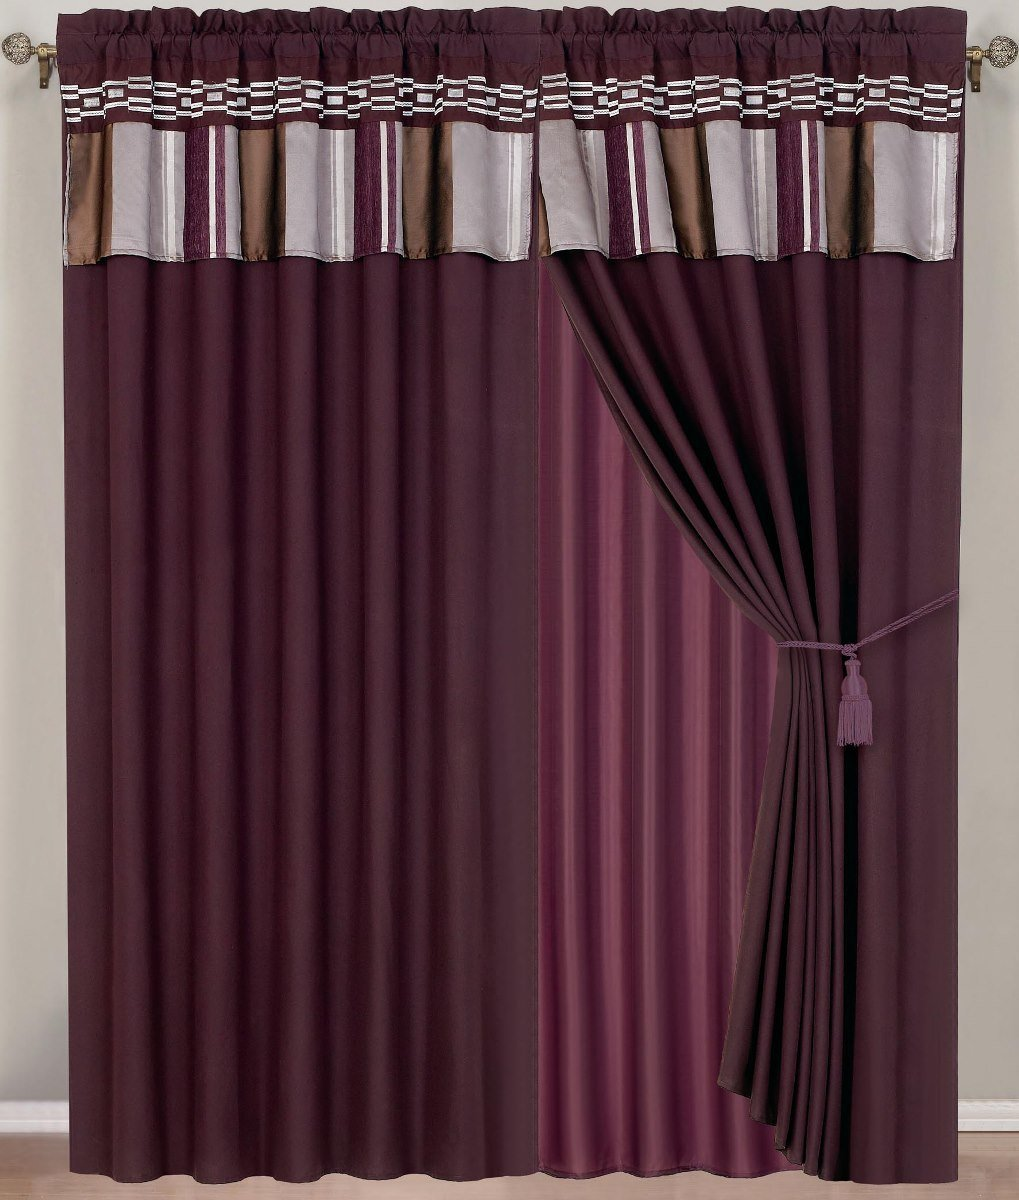 "Claudia Purple Curtains 2 x Panels 60x84""ea. with Valance"